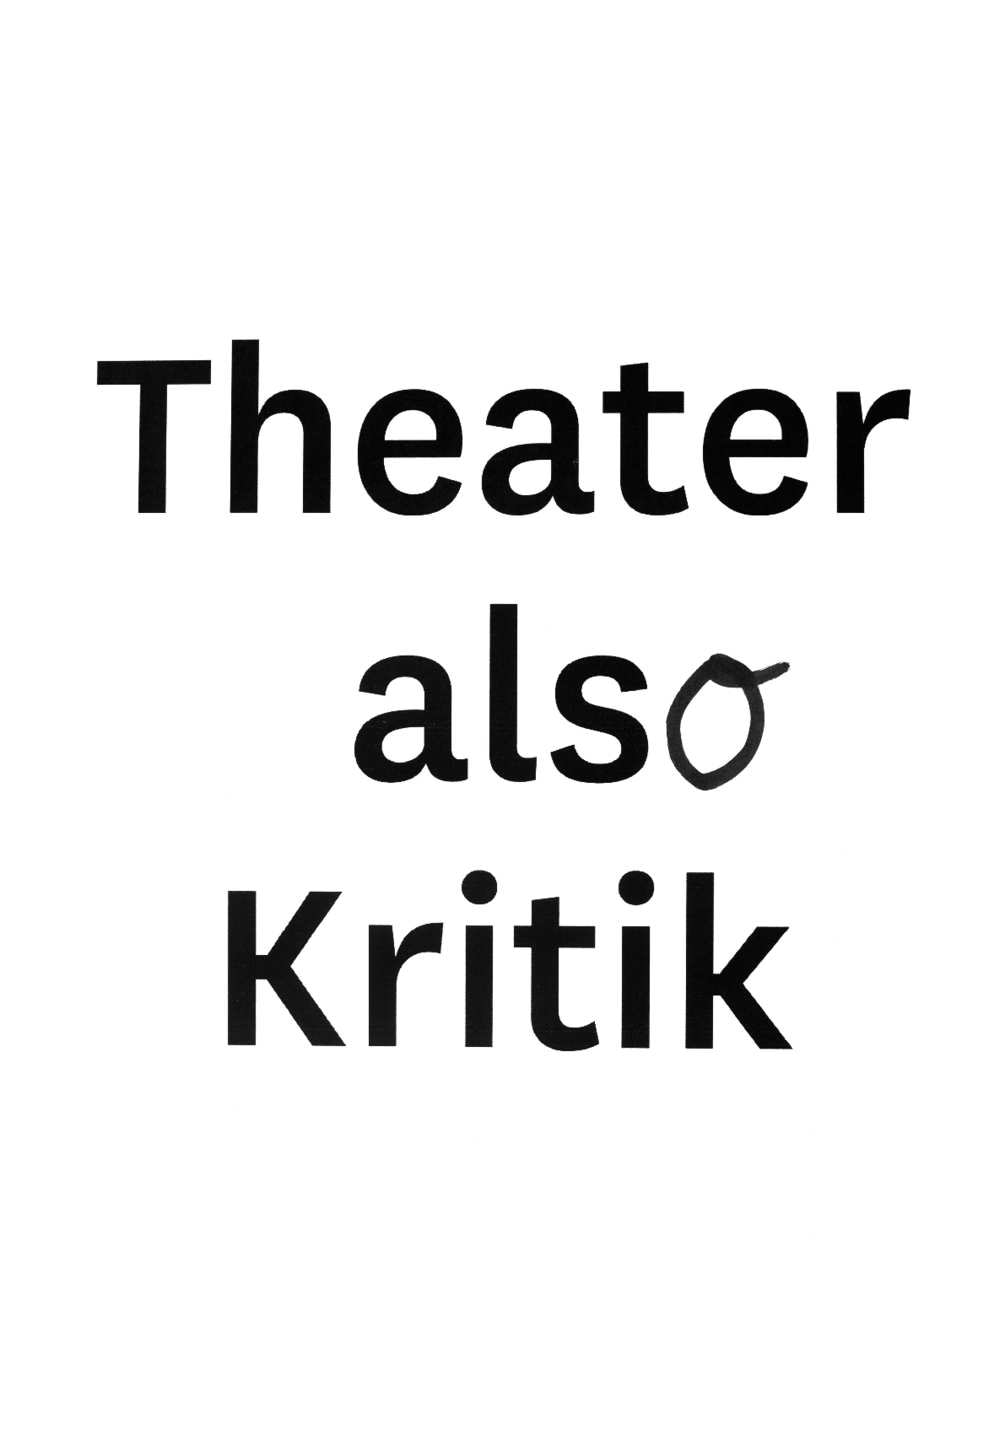 theater-as-critique-slip-10-1005x1435px